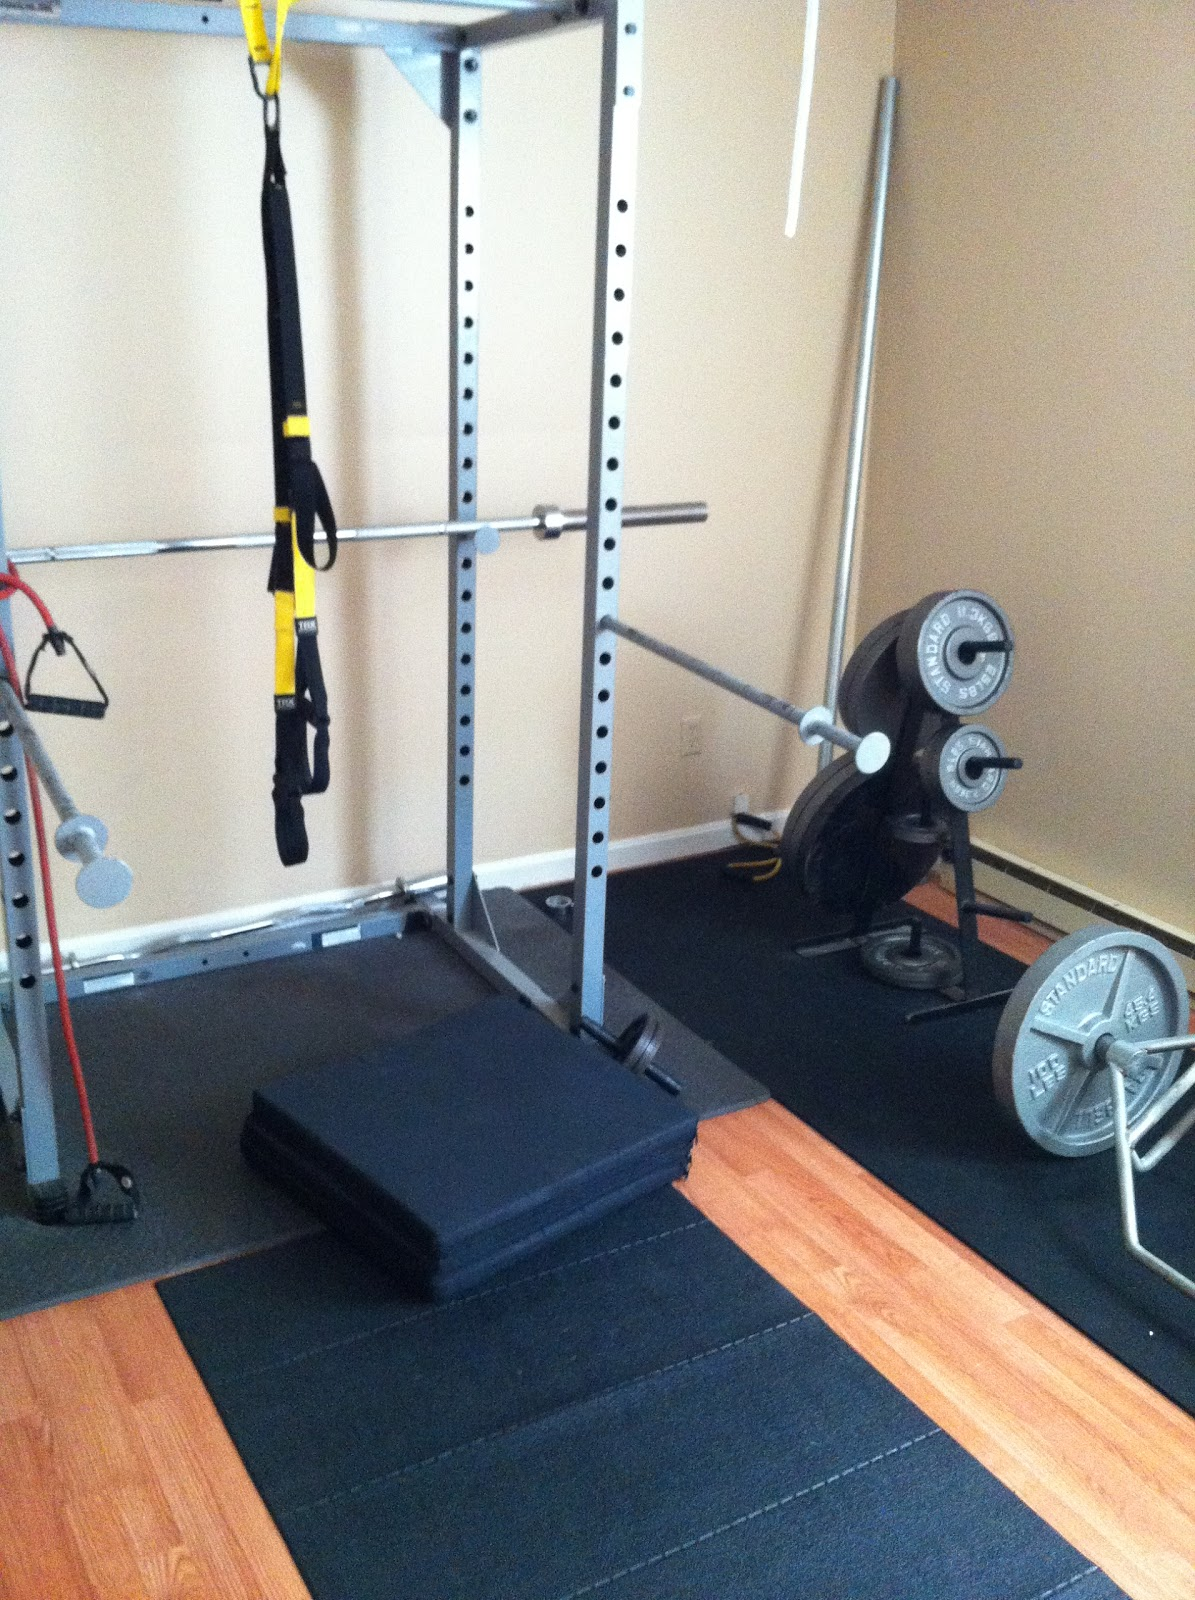 How to find a good gym and training program part